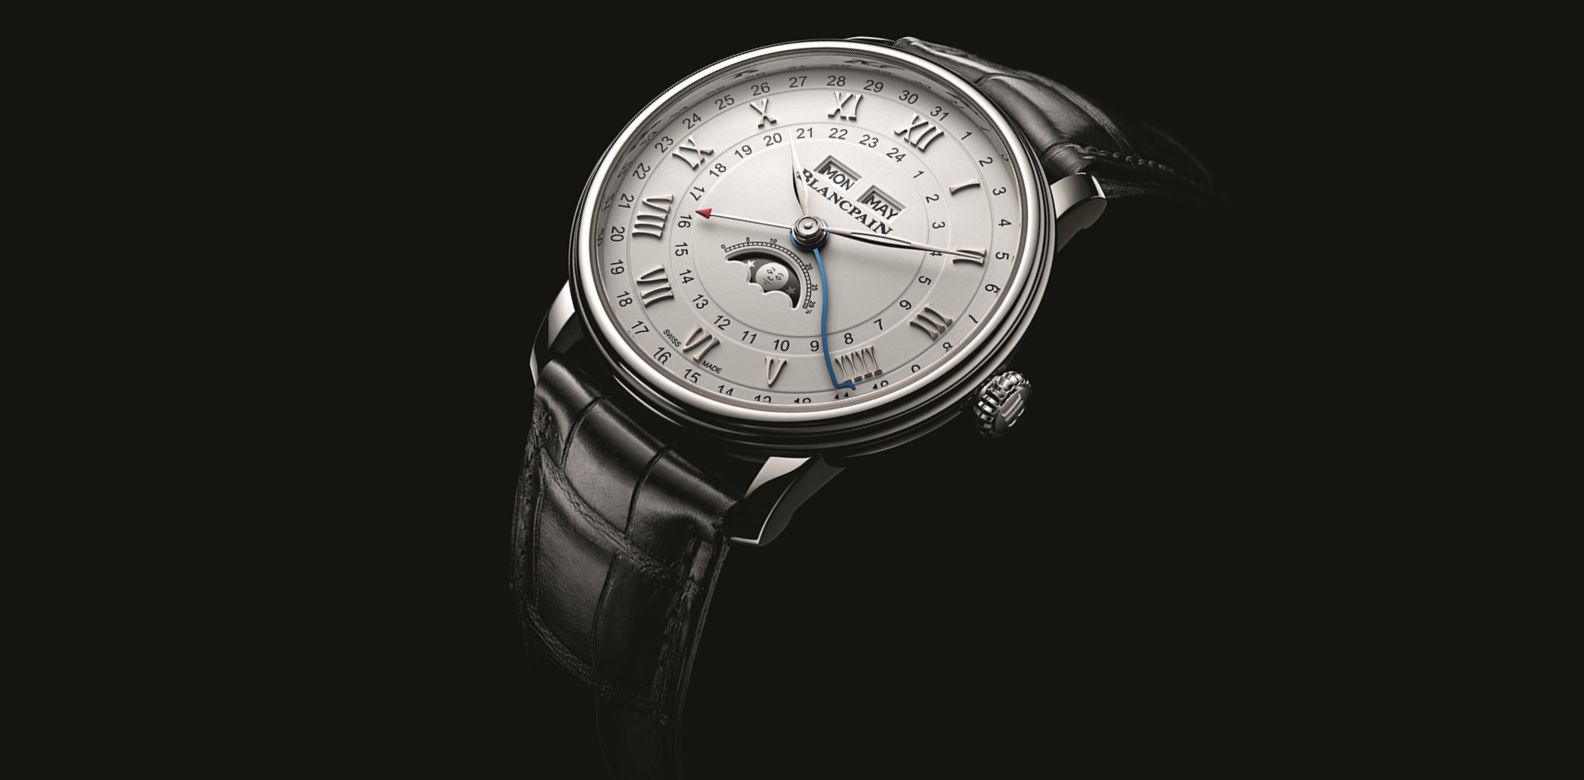 Blancpain's Villeret Quantième Complet GMT Watch Is A Classic Christmas Gift